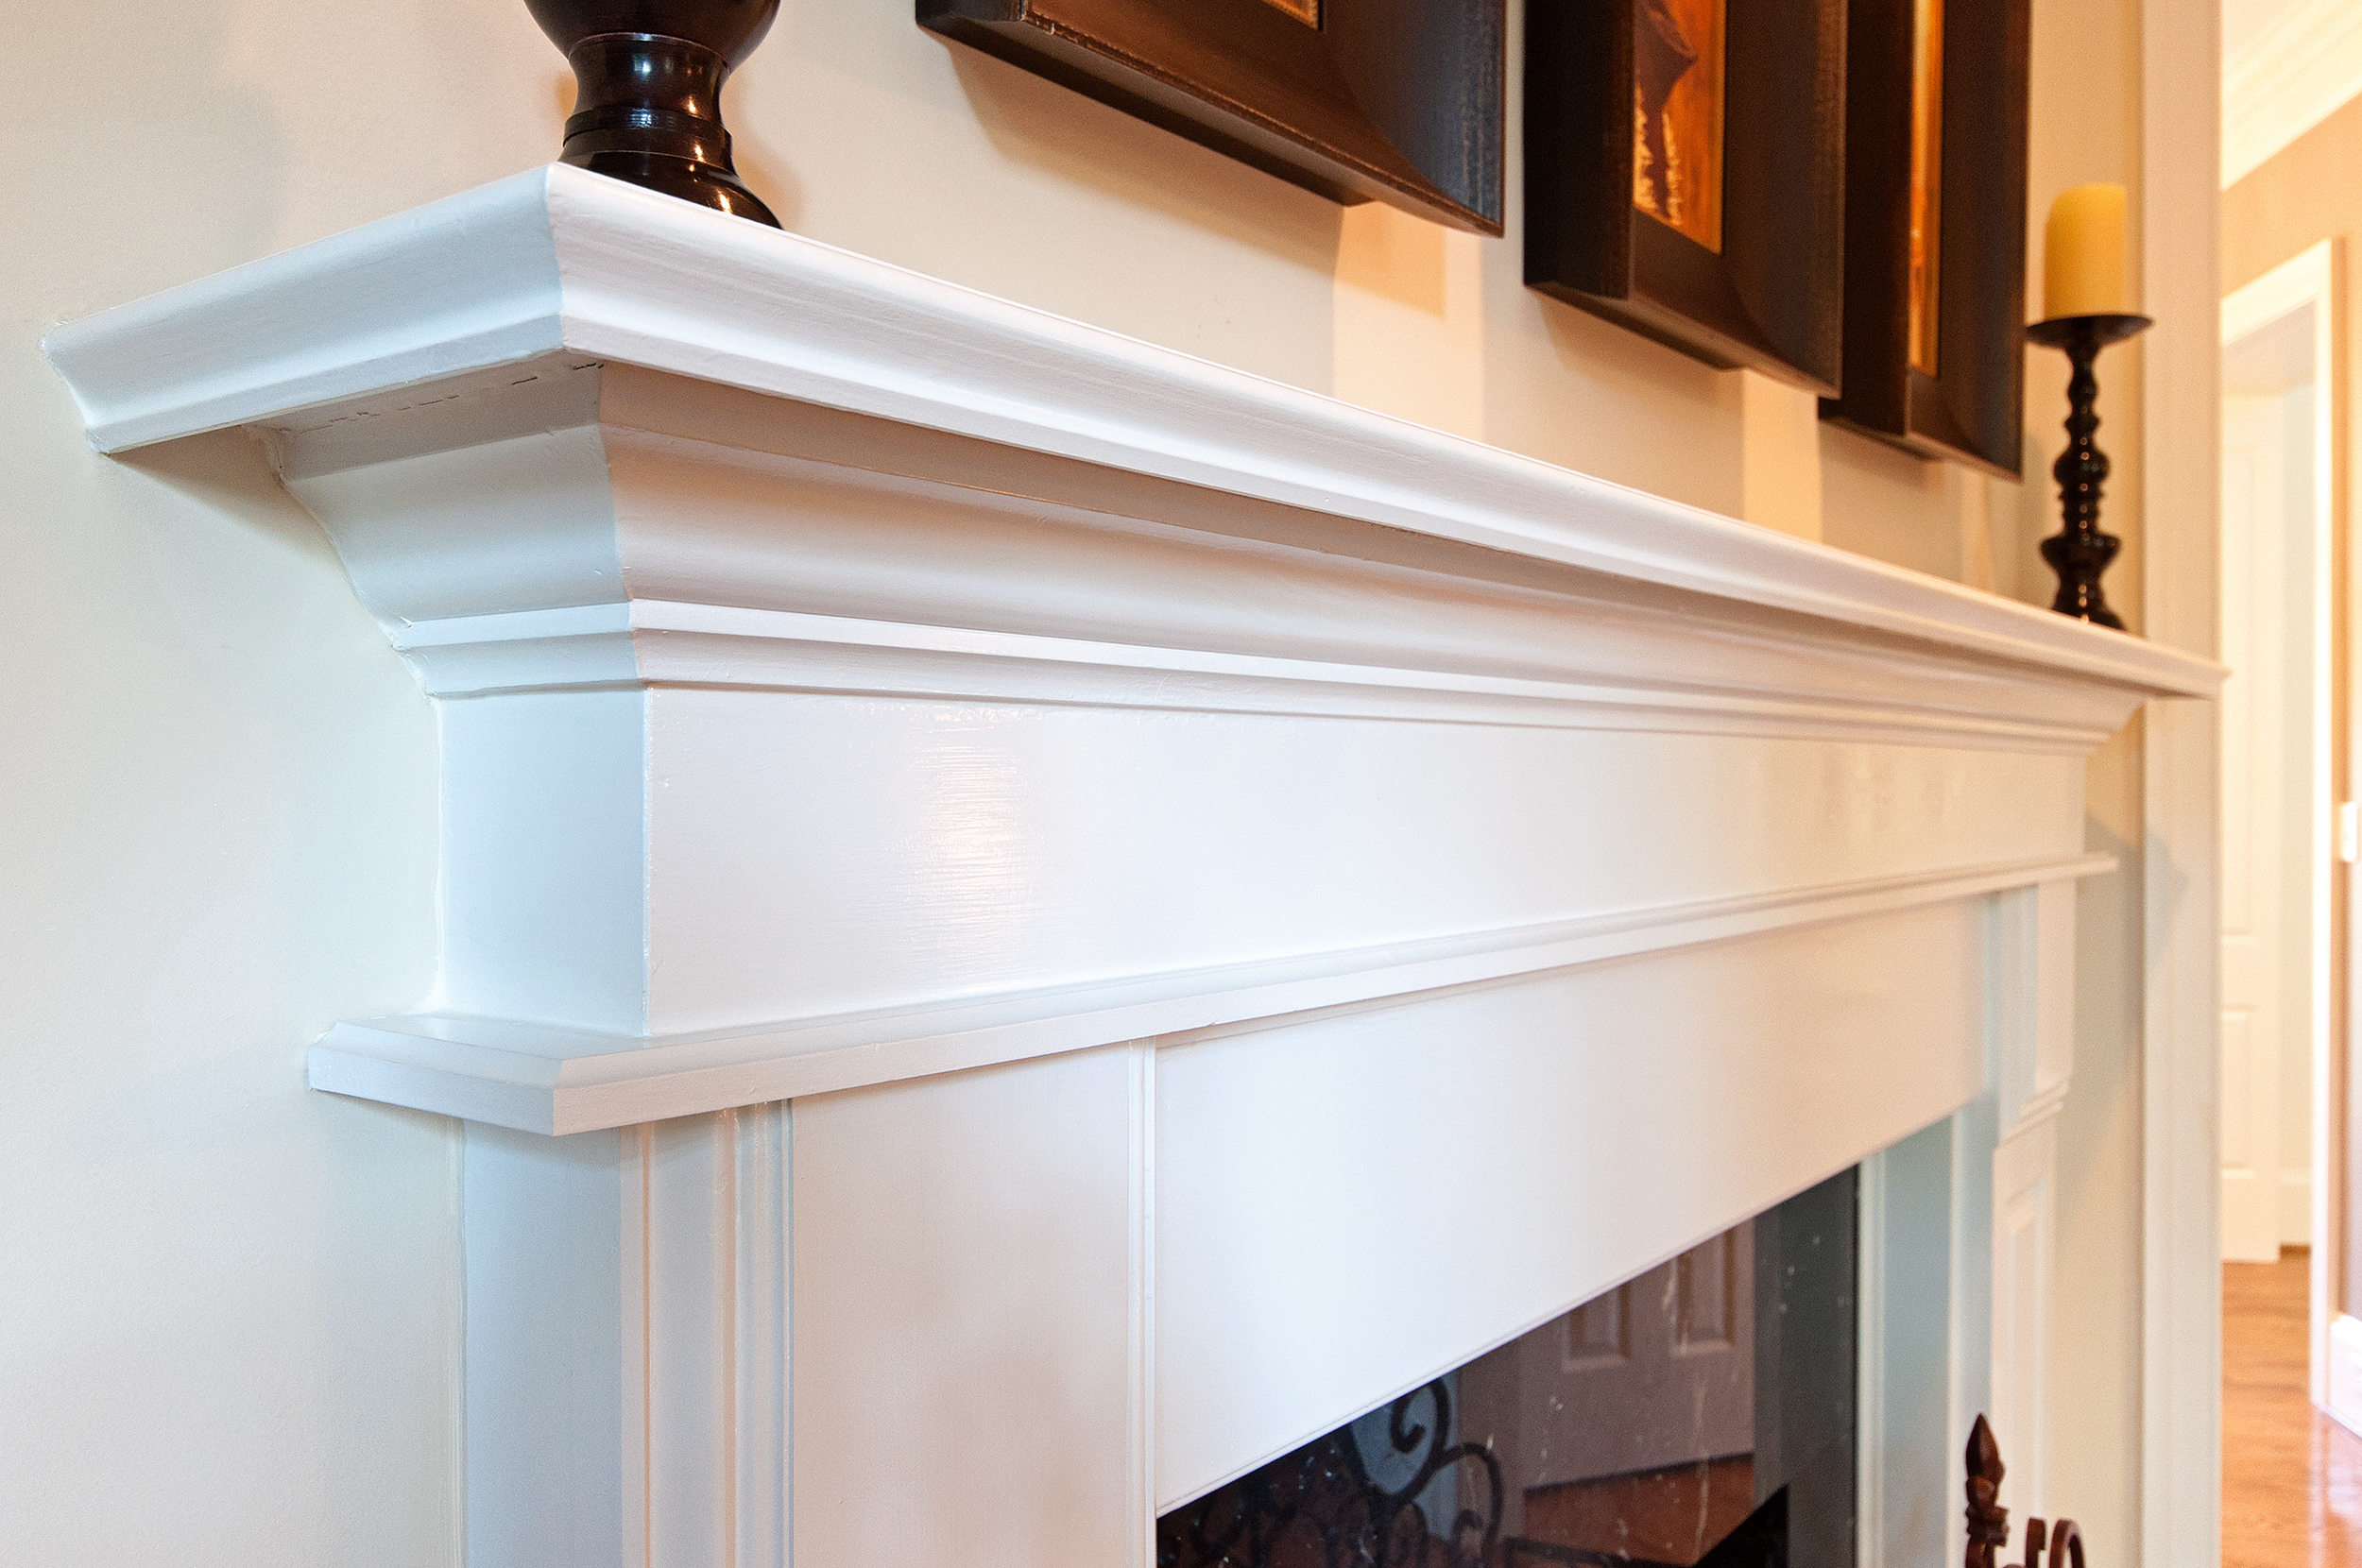 008southernclassicFIREPLACE02print.jpg